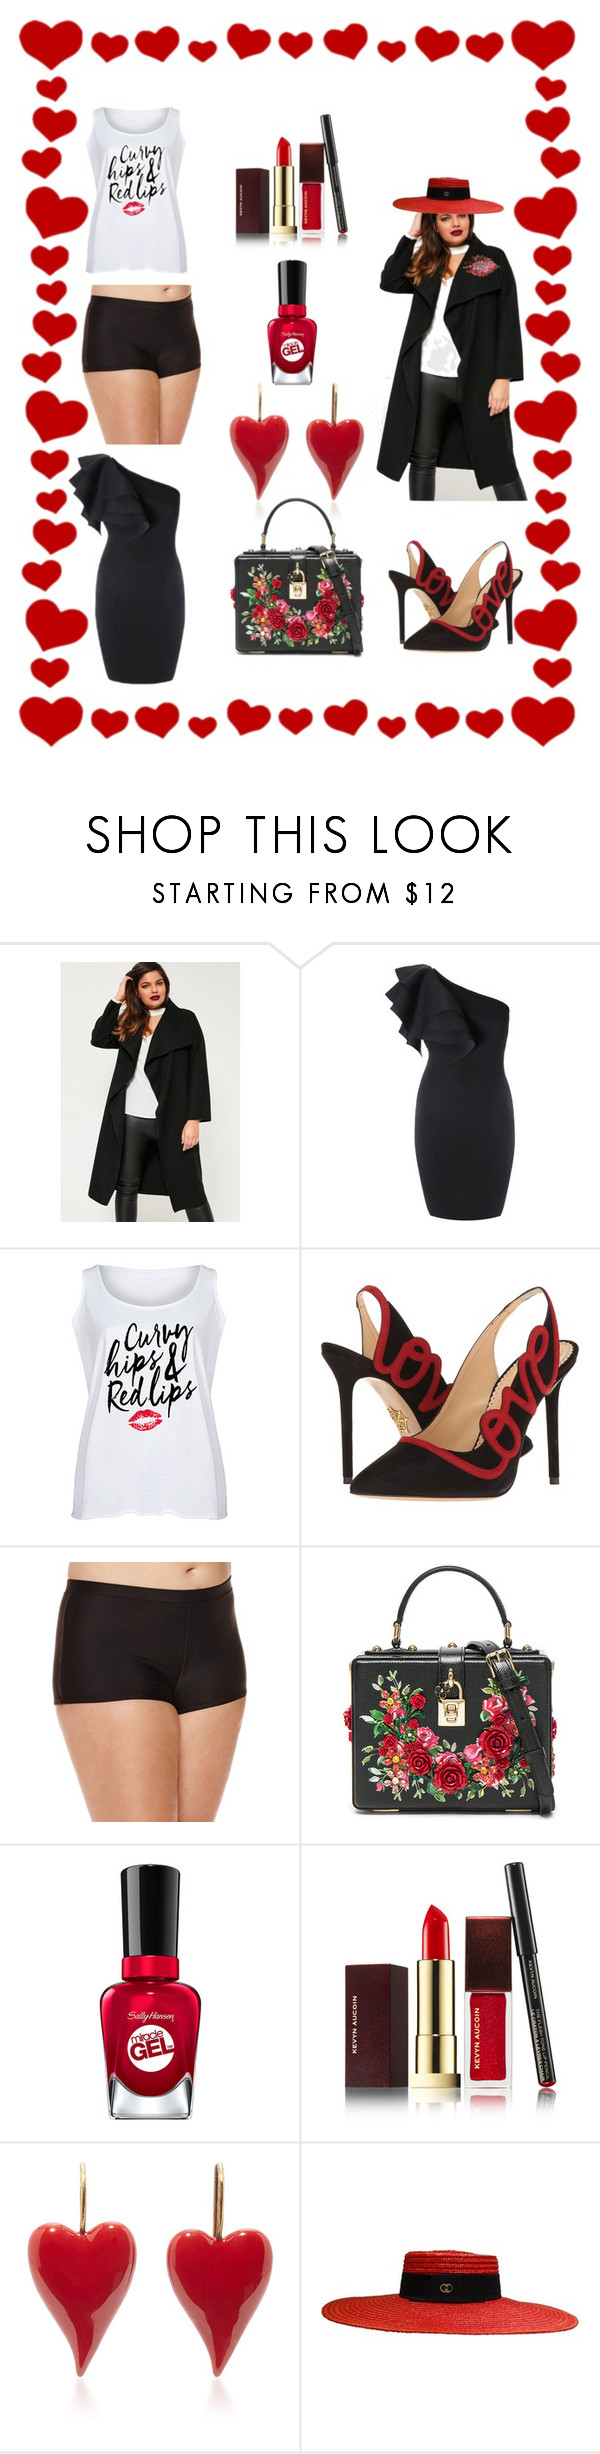 """Curvy Hips and Red Lips"" by dmdivagirl on Polyvore featuring Missguided, LC Trendz, Charlotte Olympia, Arizona, Dolce&Gabbana, Kevyn Aucoin, Gucci and plus size clothing"